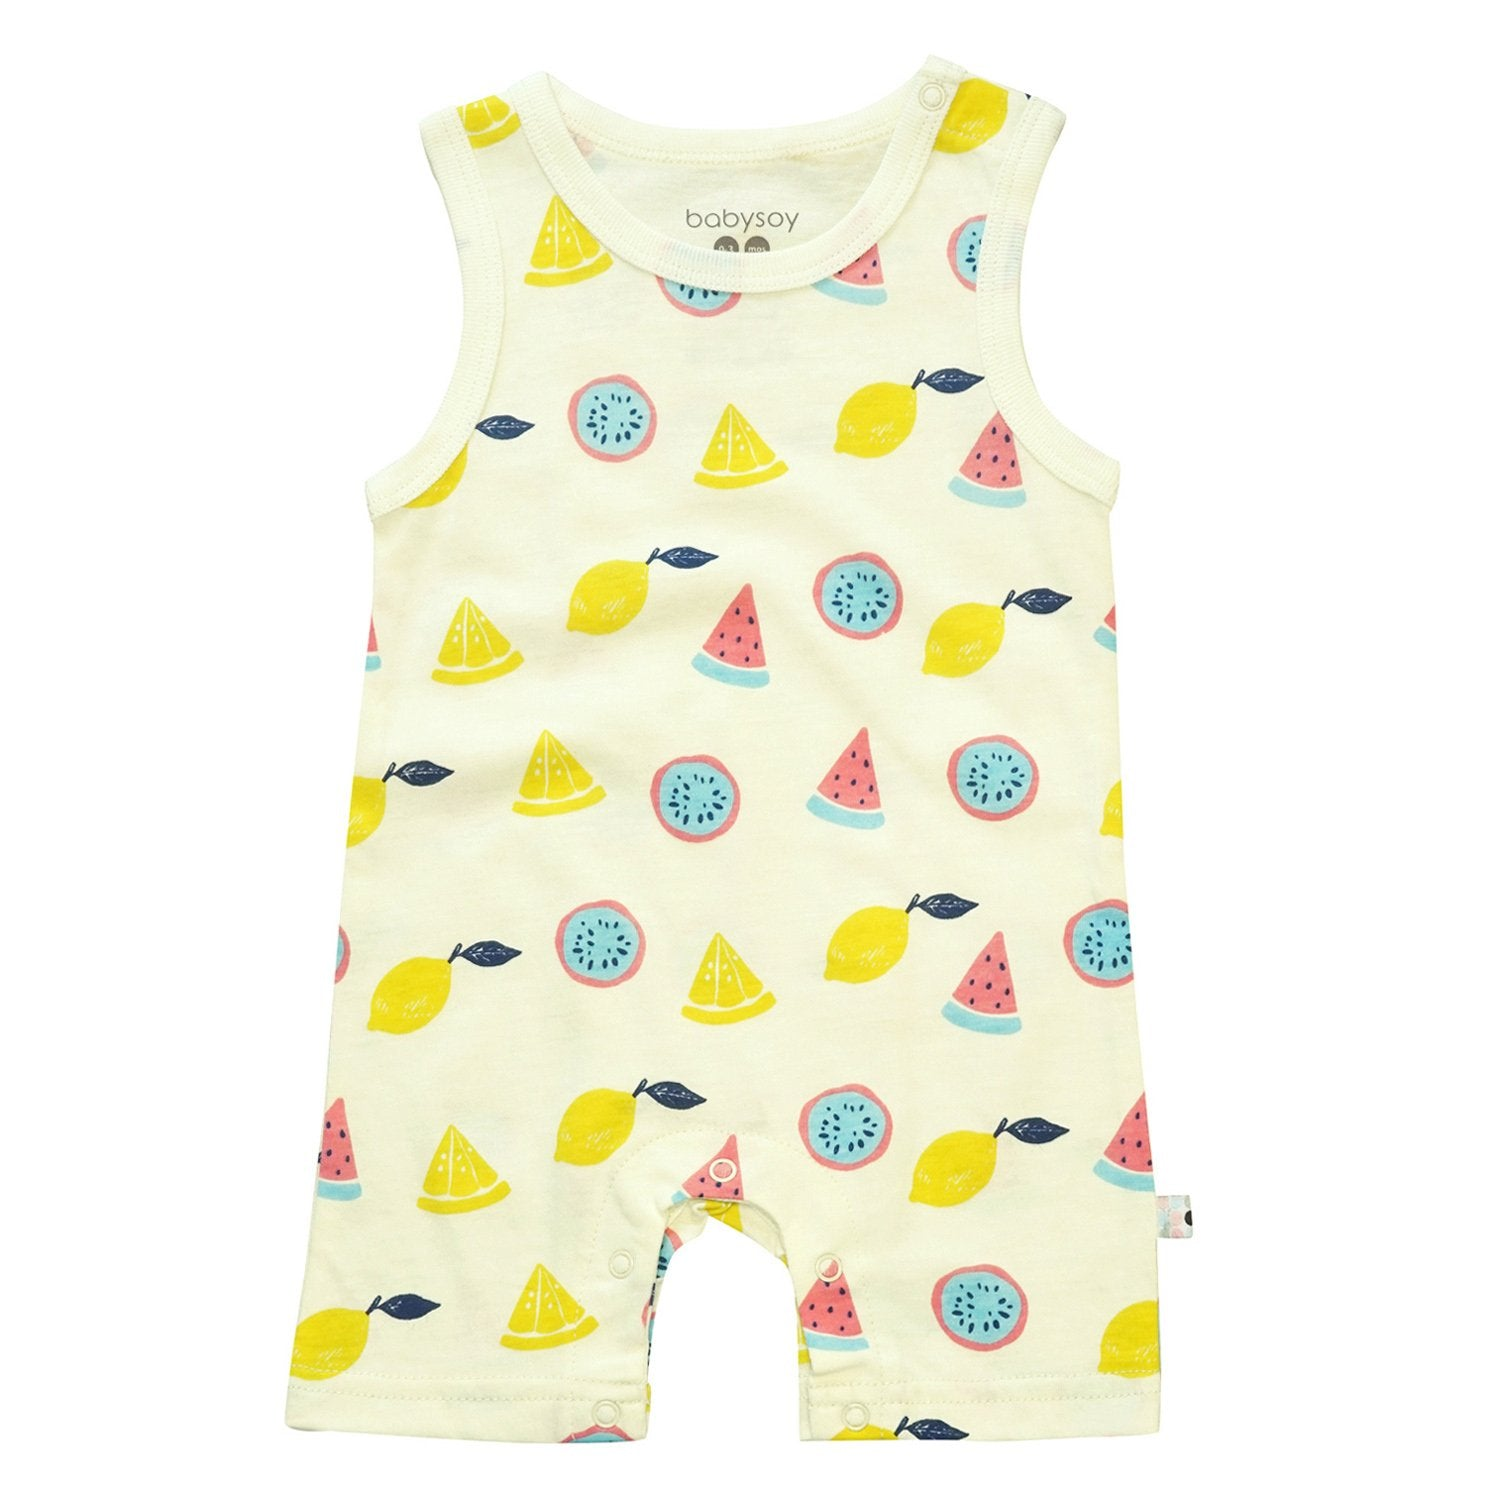 Tank Top Onesie - Popsicle and Fruit Prints by Babysoy